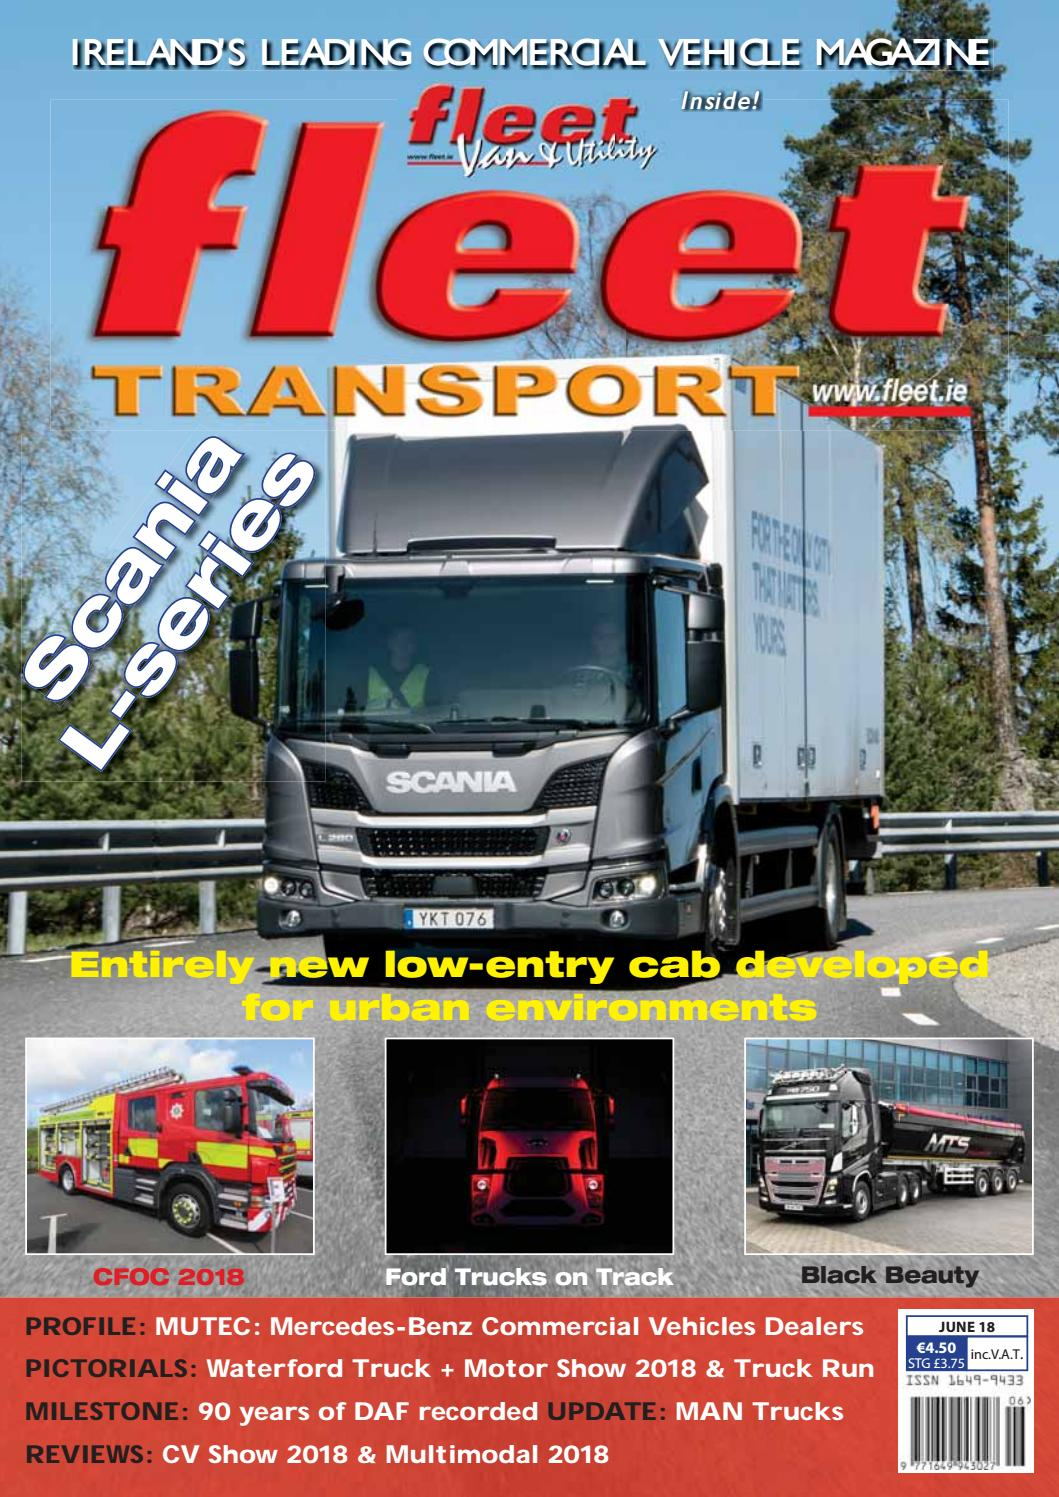 Fleet Transport June18 By Issuu 1994 Nissan Pathfinder Only Runthe Switch In Start Position